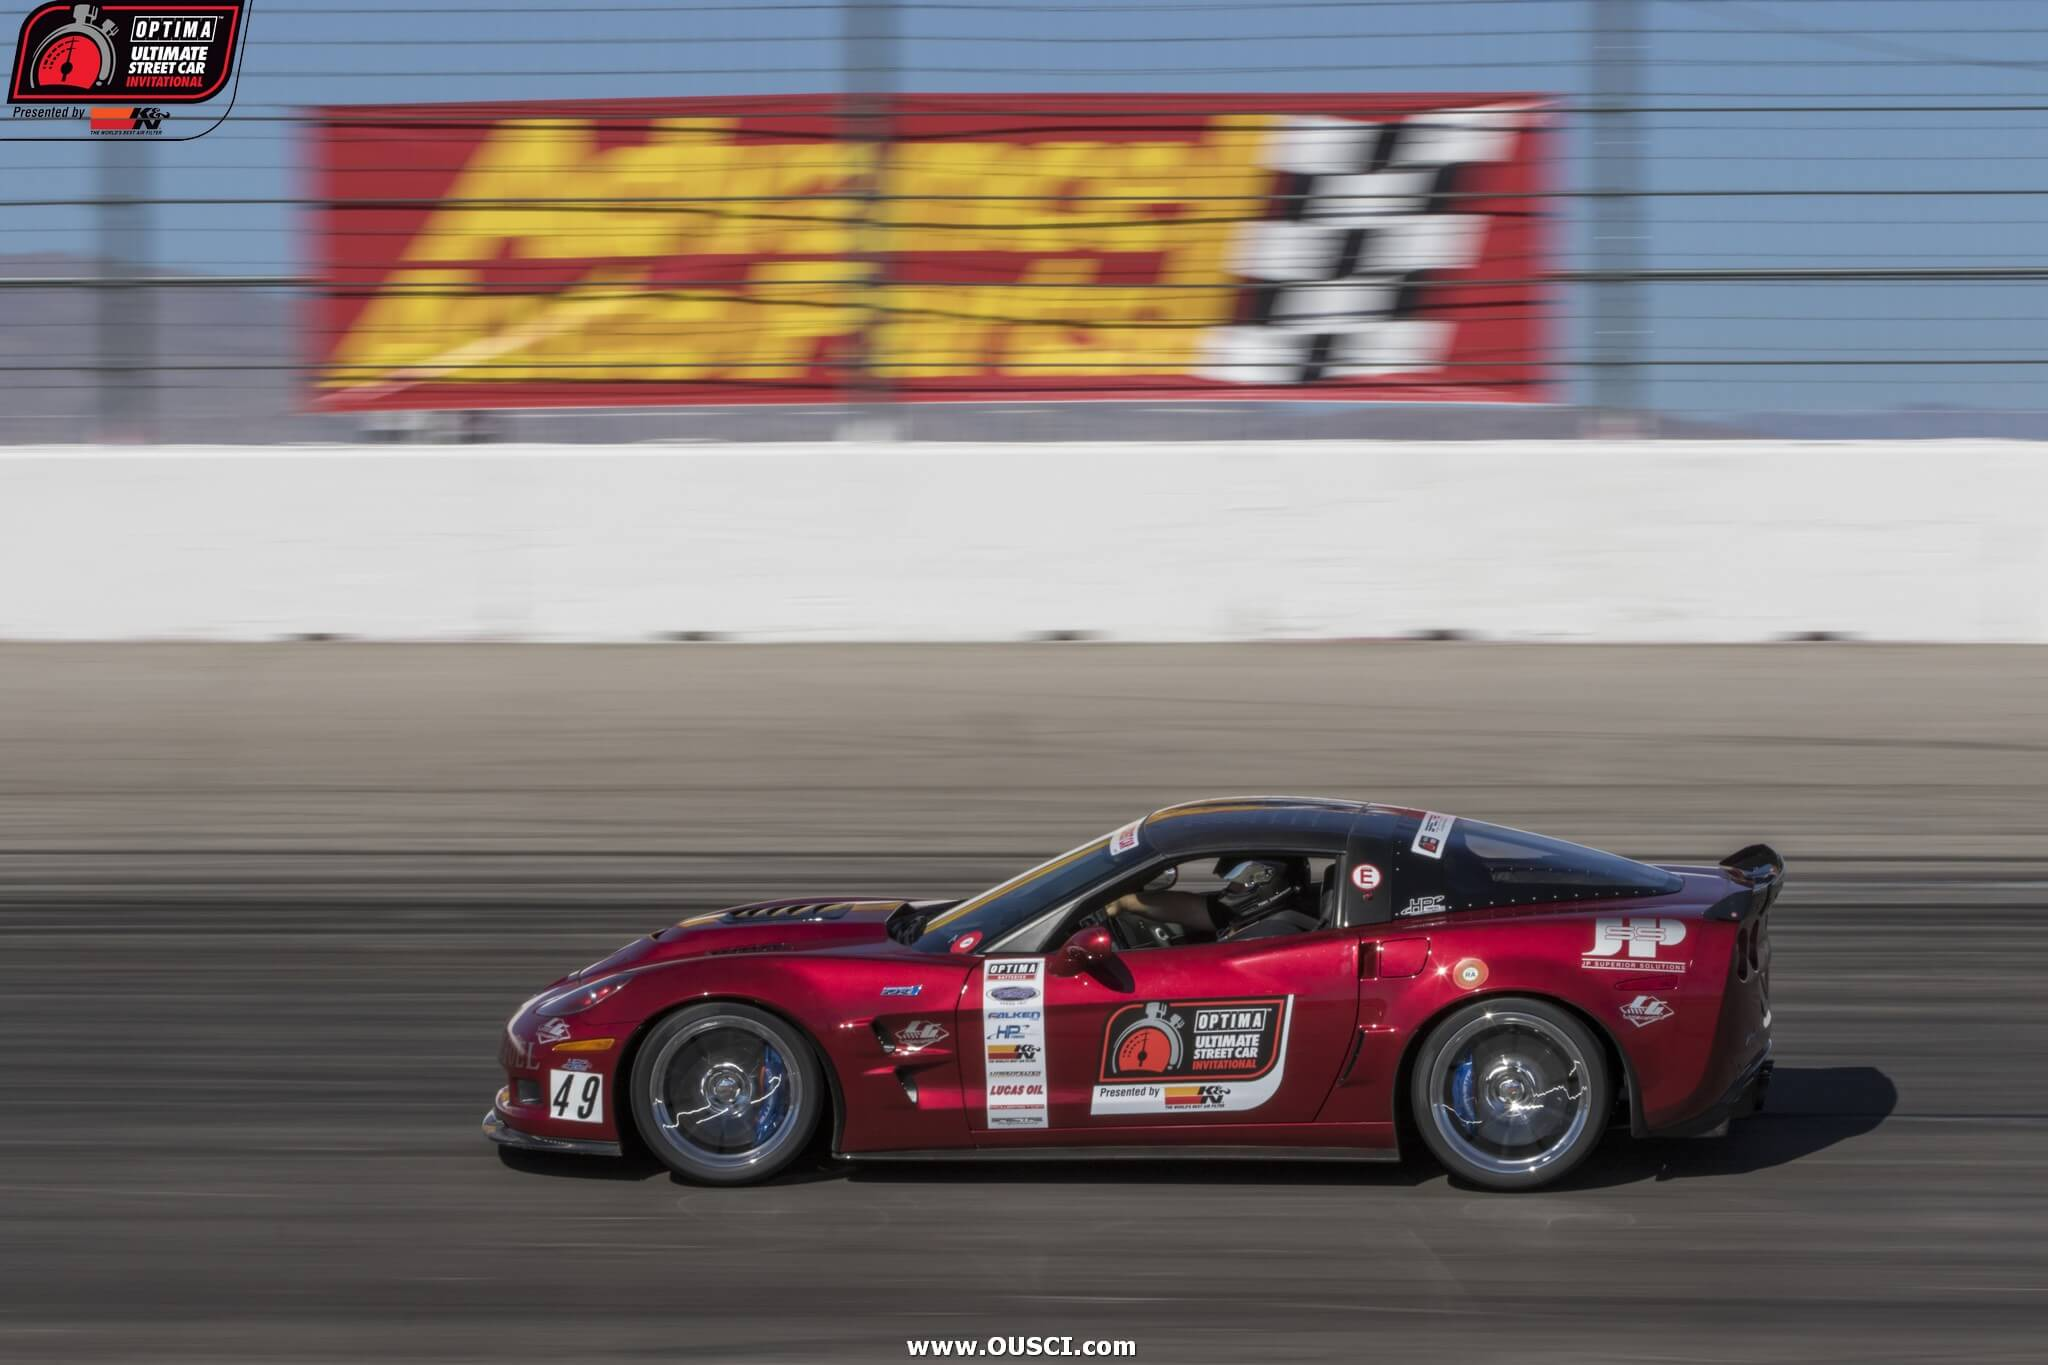 Toby-Thompson-2010-Chevy-Corvette-PowerStop-SpeedStop-2016-OUSCI_113